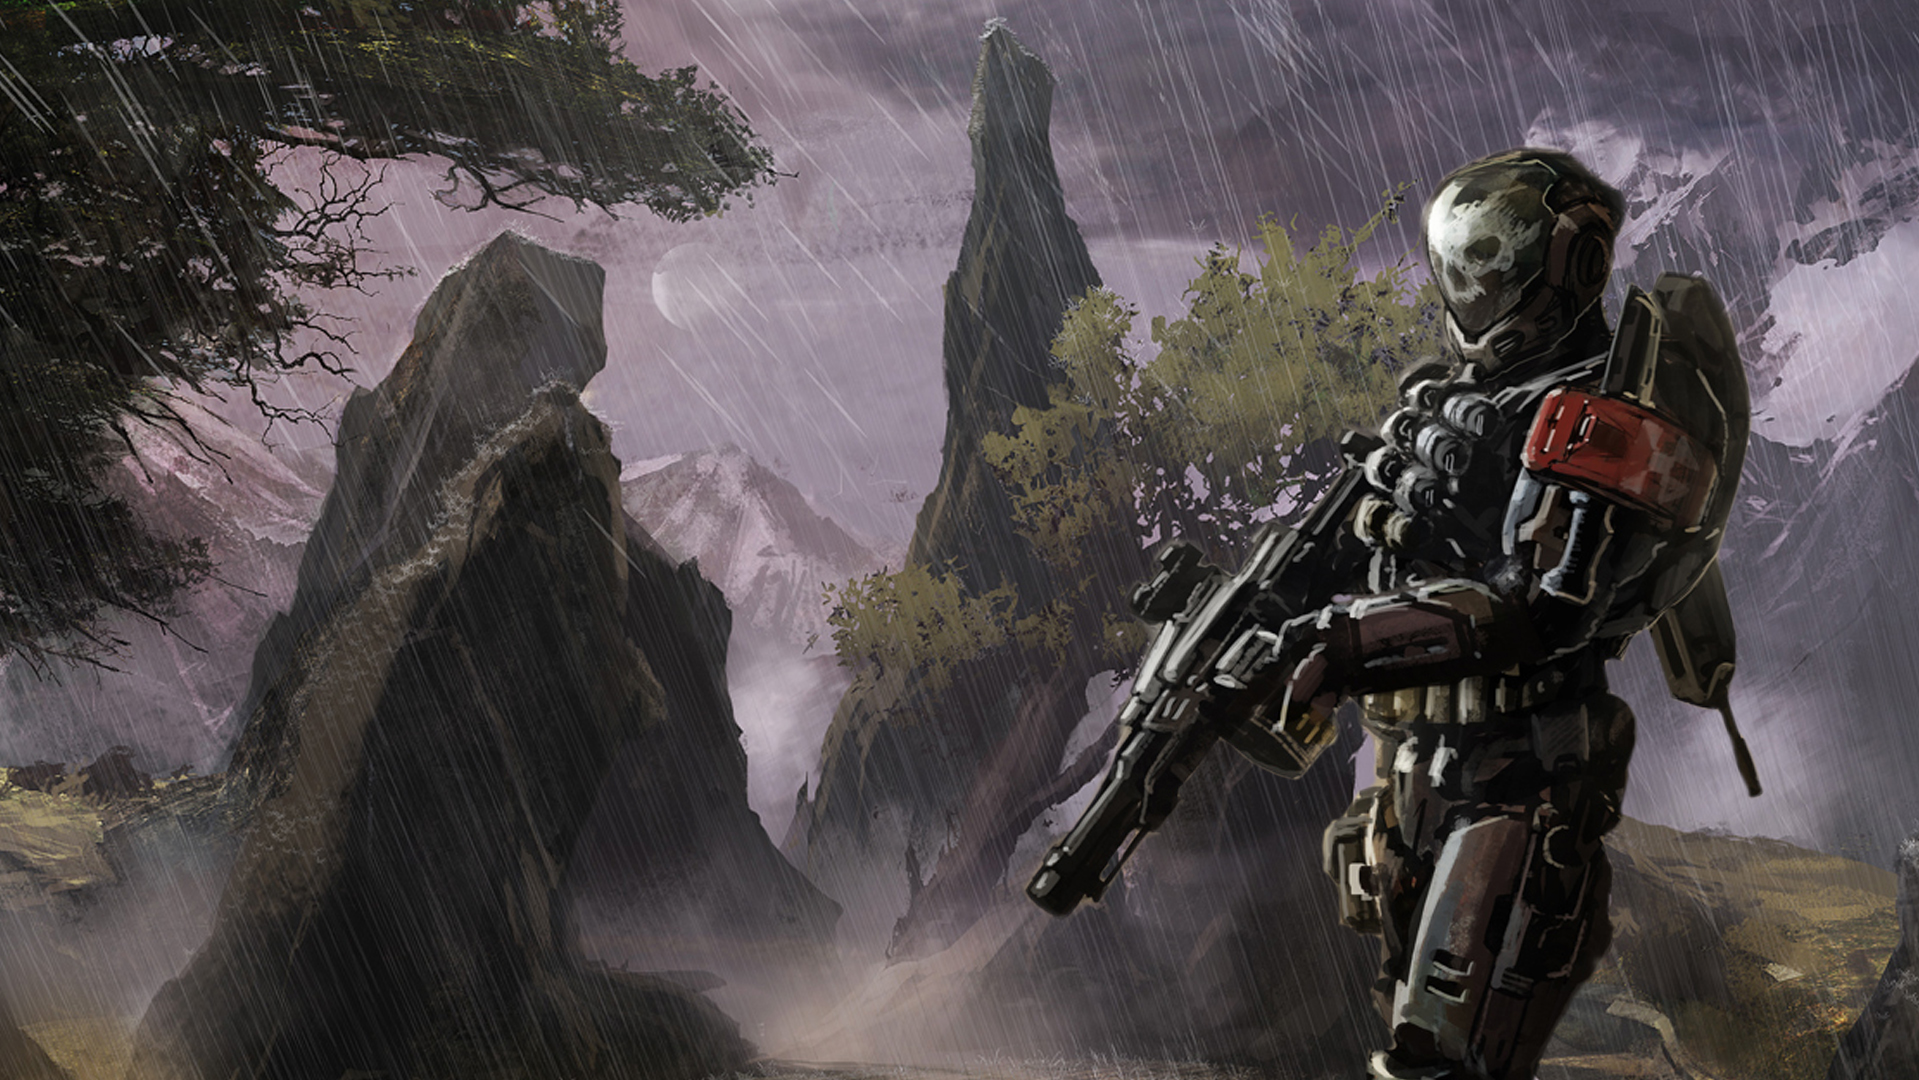 Best Fan Wallpapers: Halo Wallpaper And Background Image